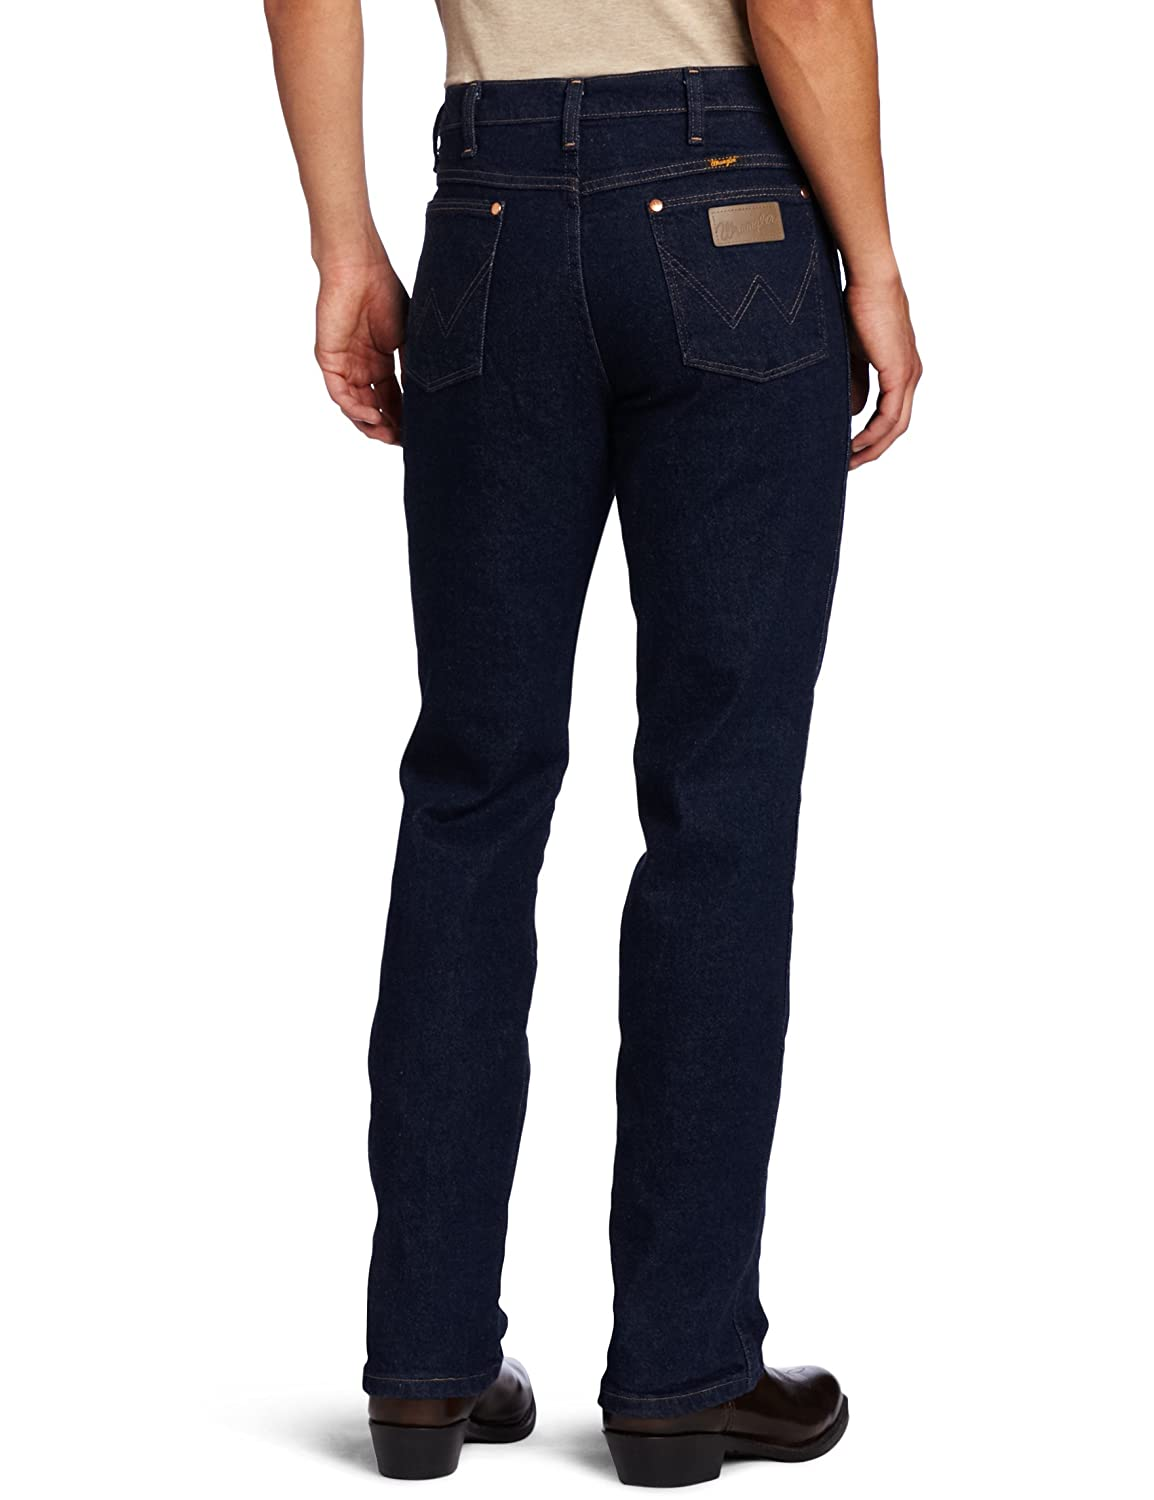 7fa963e6121 Wrangler Men's Western Traditional Bootcut Slim Jean at Amazon Men's  Clothing store: Slim Fit Stretch Mens Jeans